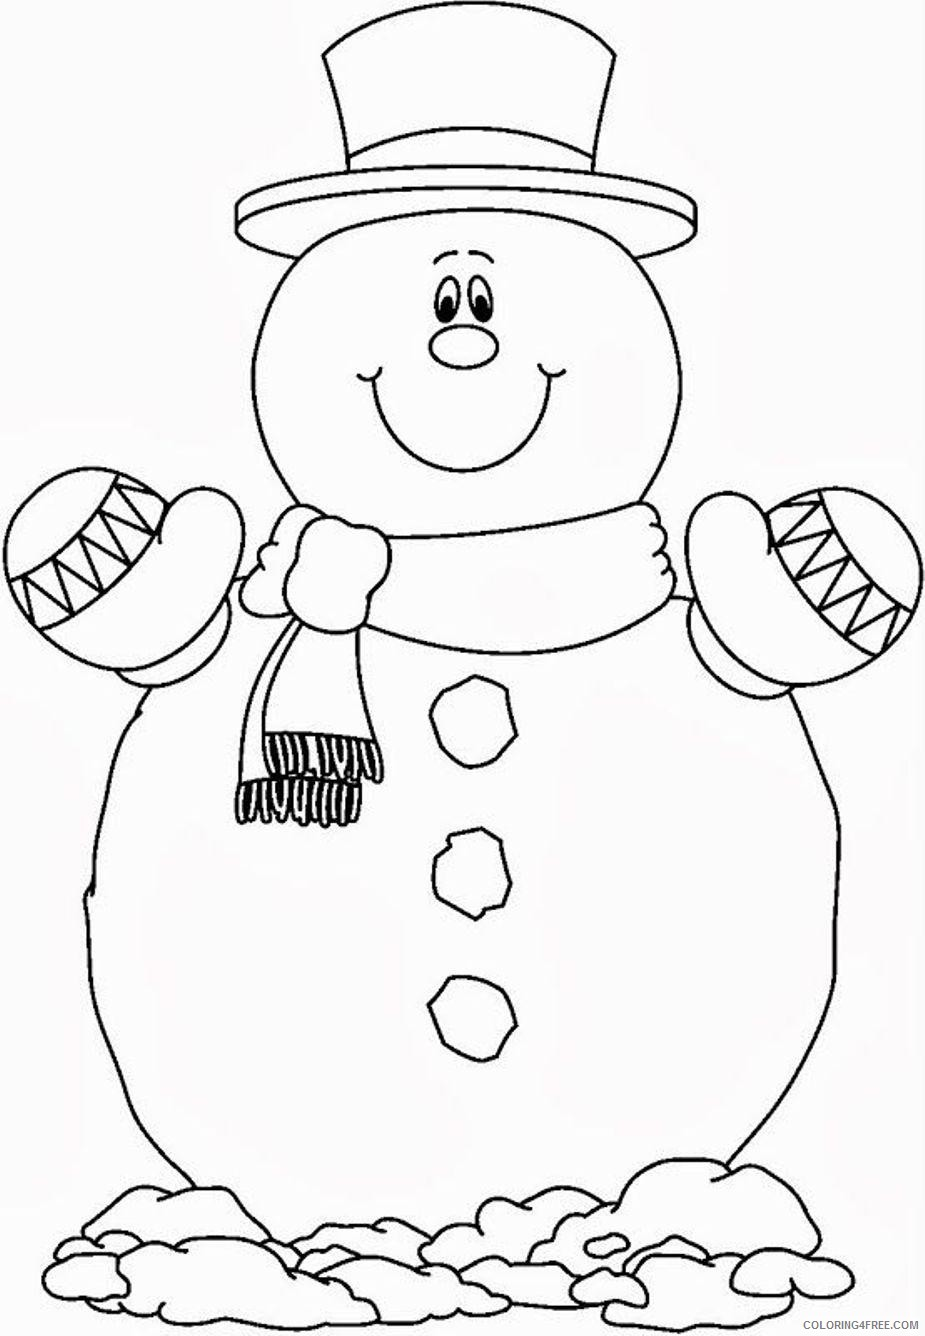 snowman coloring pages smiling Coloring4free